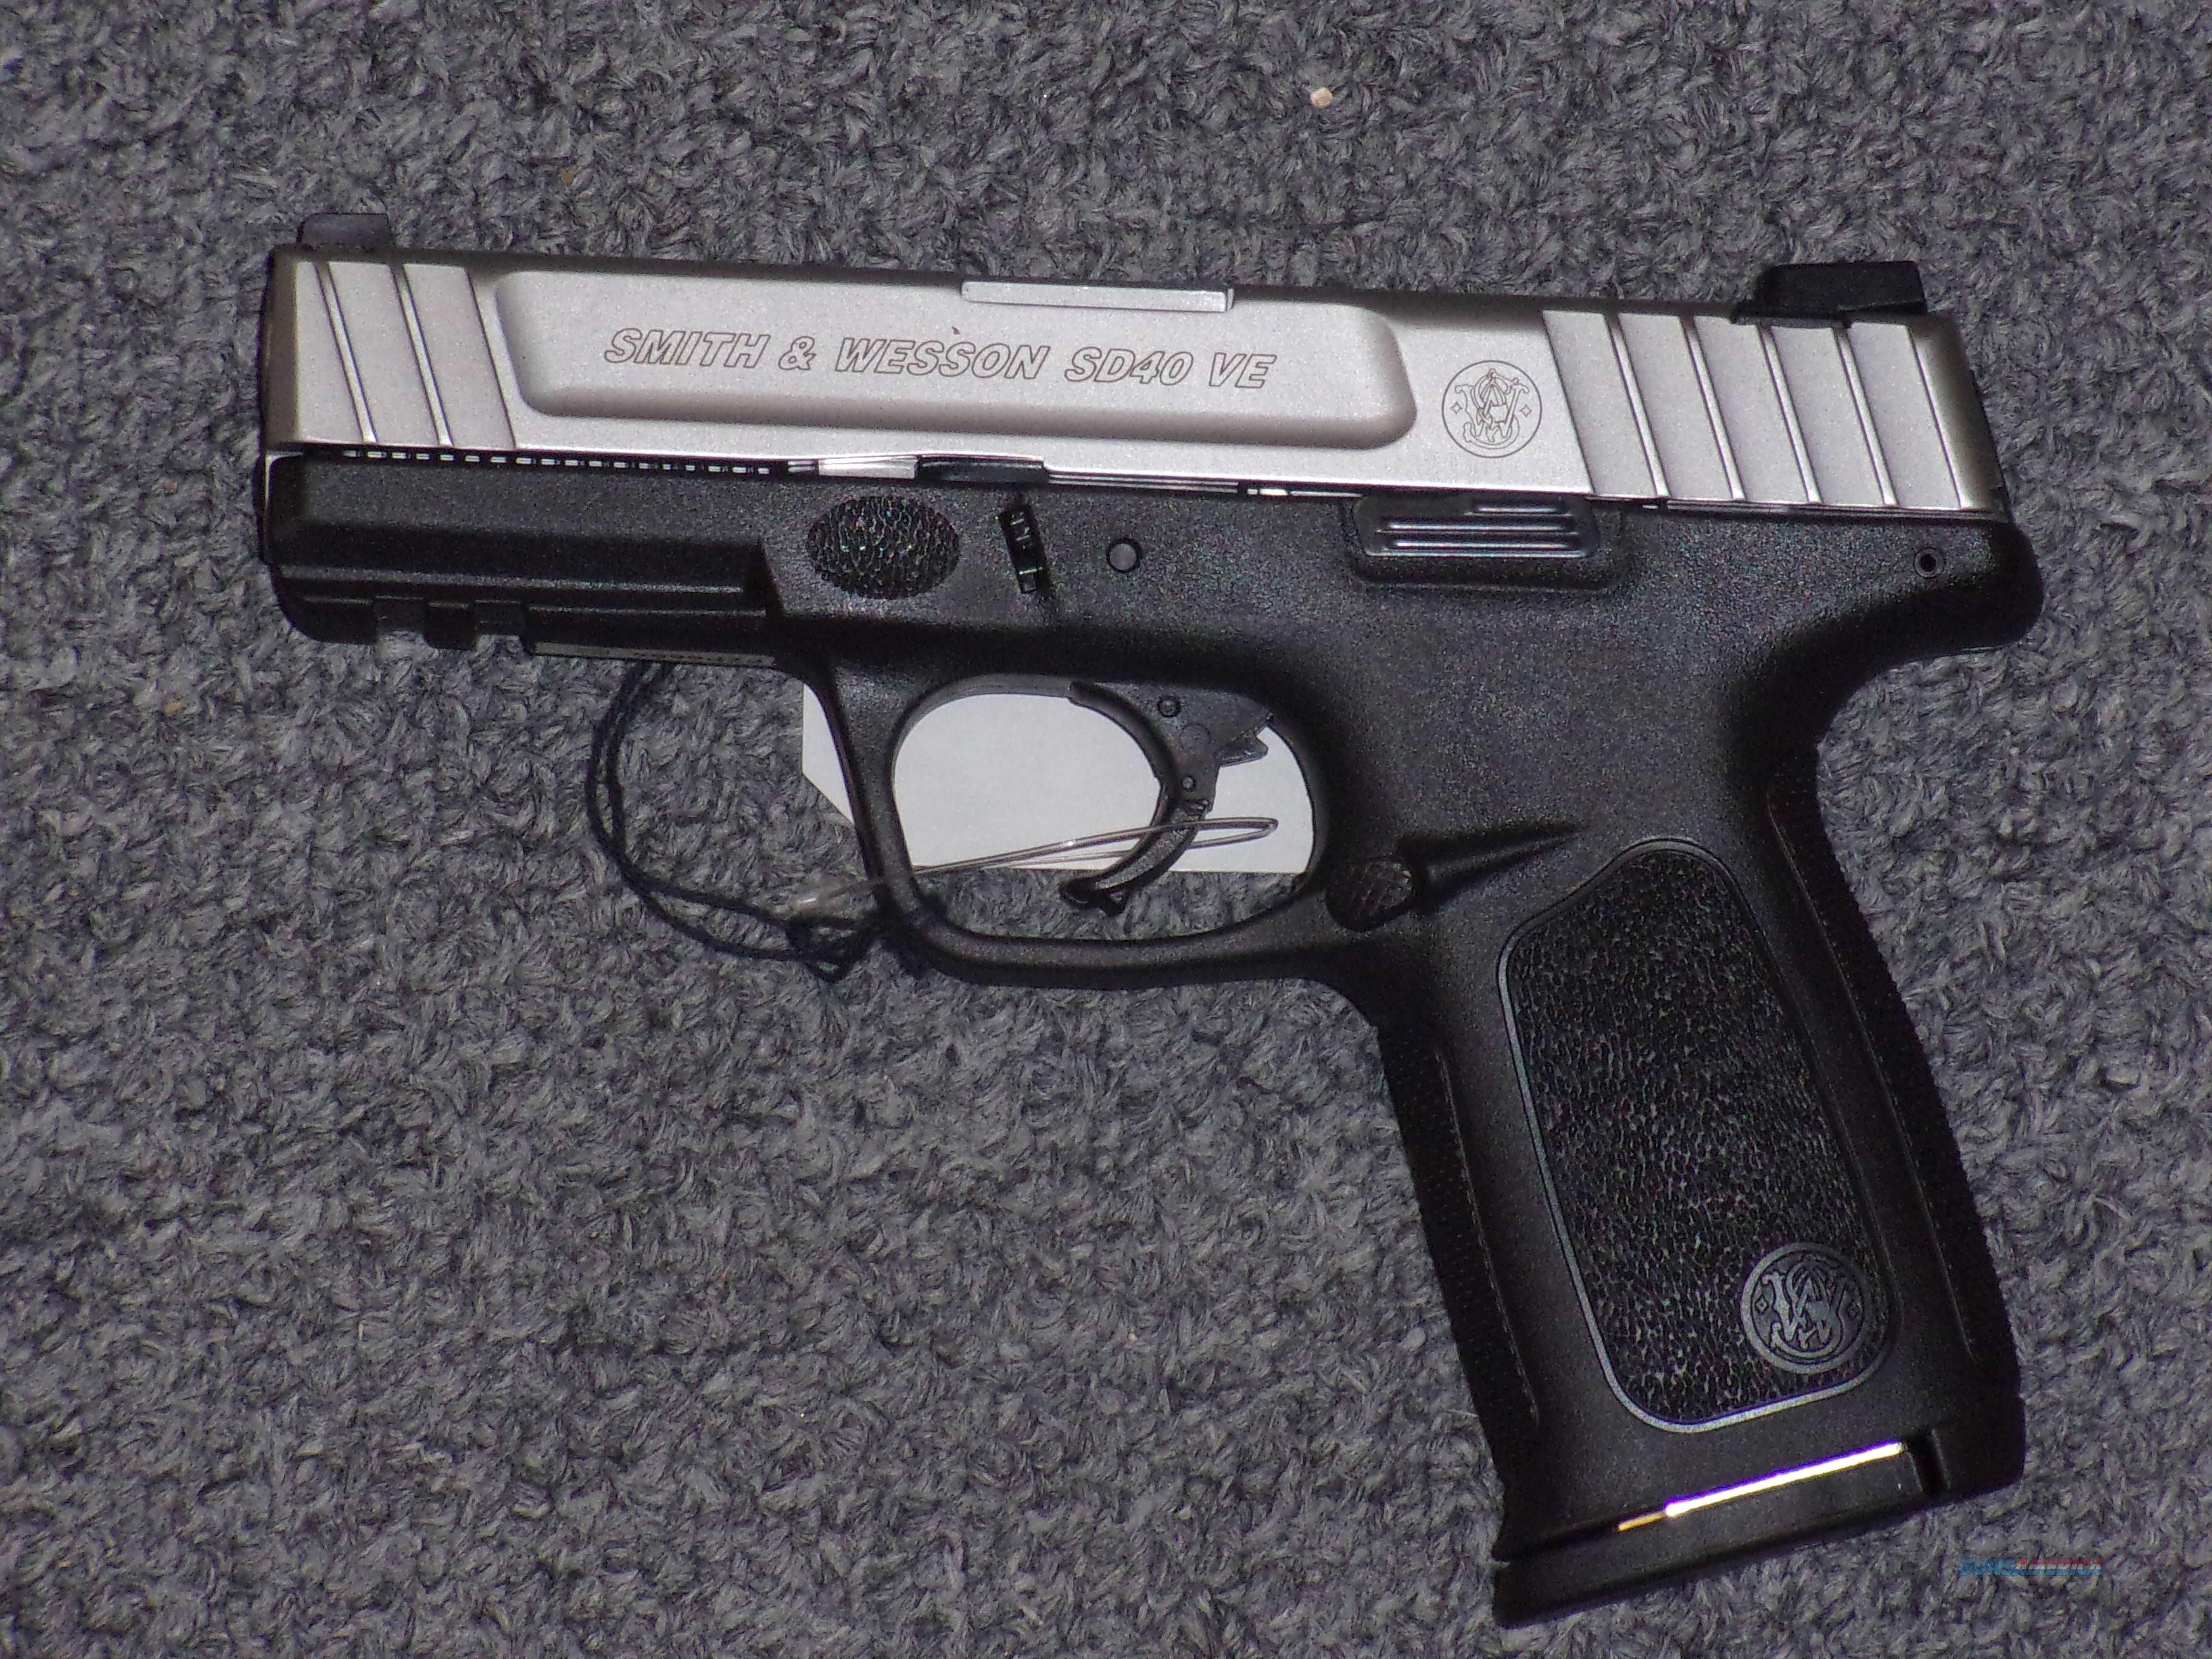 Smith & Wesson SD40 VE   Guns > Pistols > Smith & Wesson Pistols - Autos > Polymer Frame